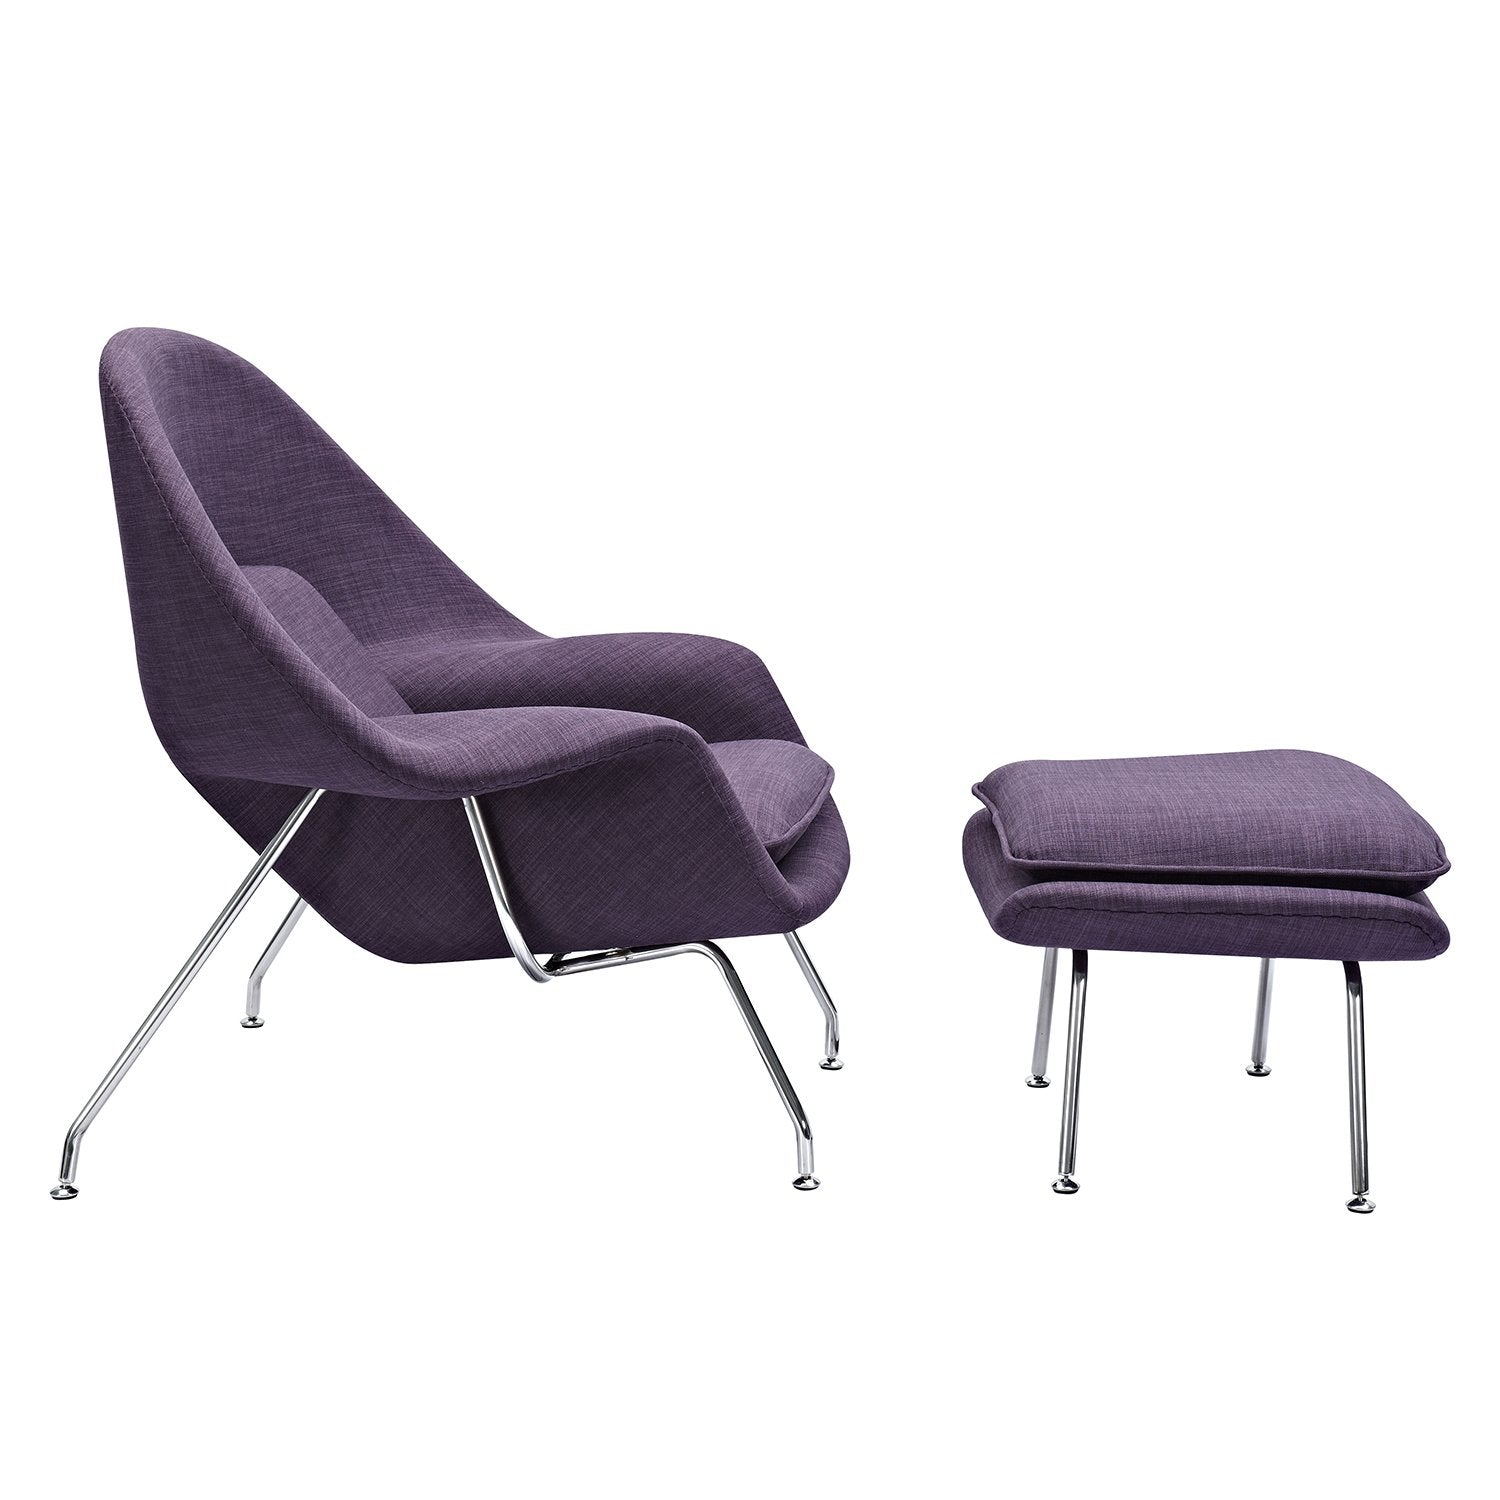 ... Saro Midcentury Modern Chair And Ottoman In Plum Purple Fabric On  Stainless Steel Legs Accent ...